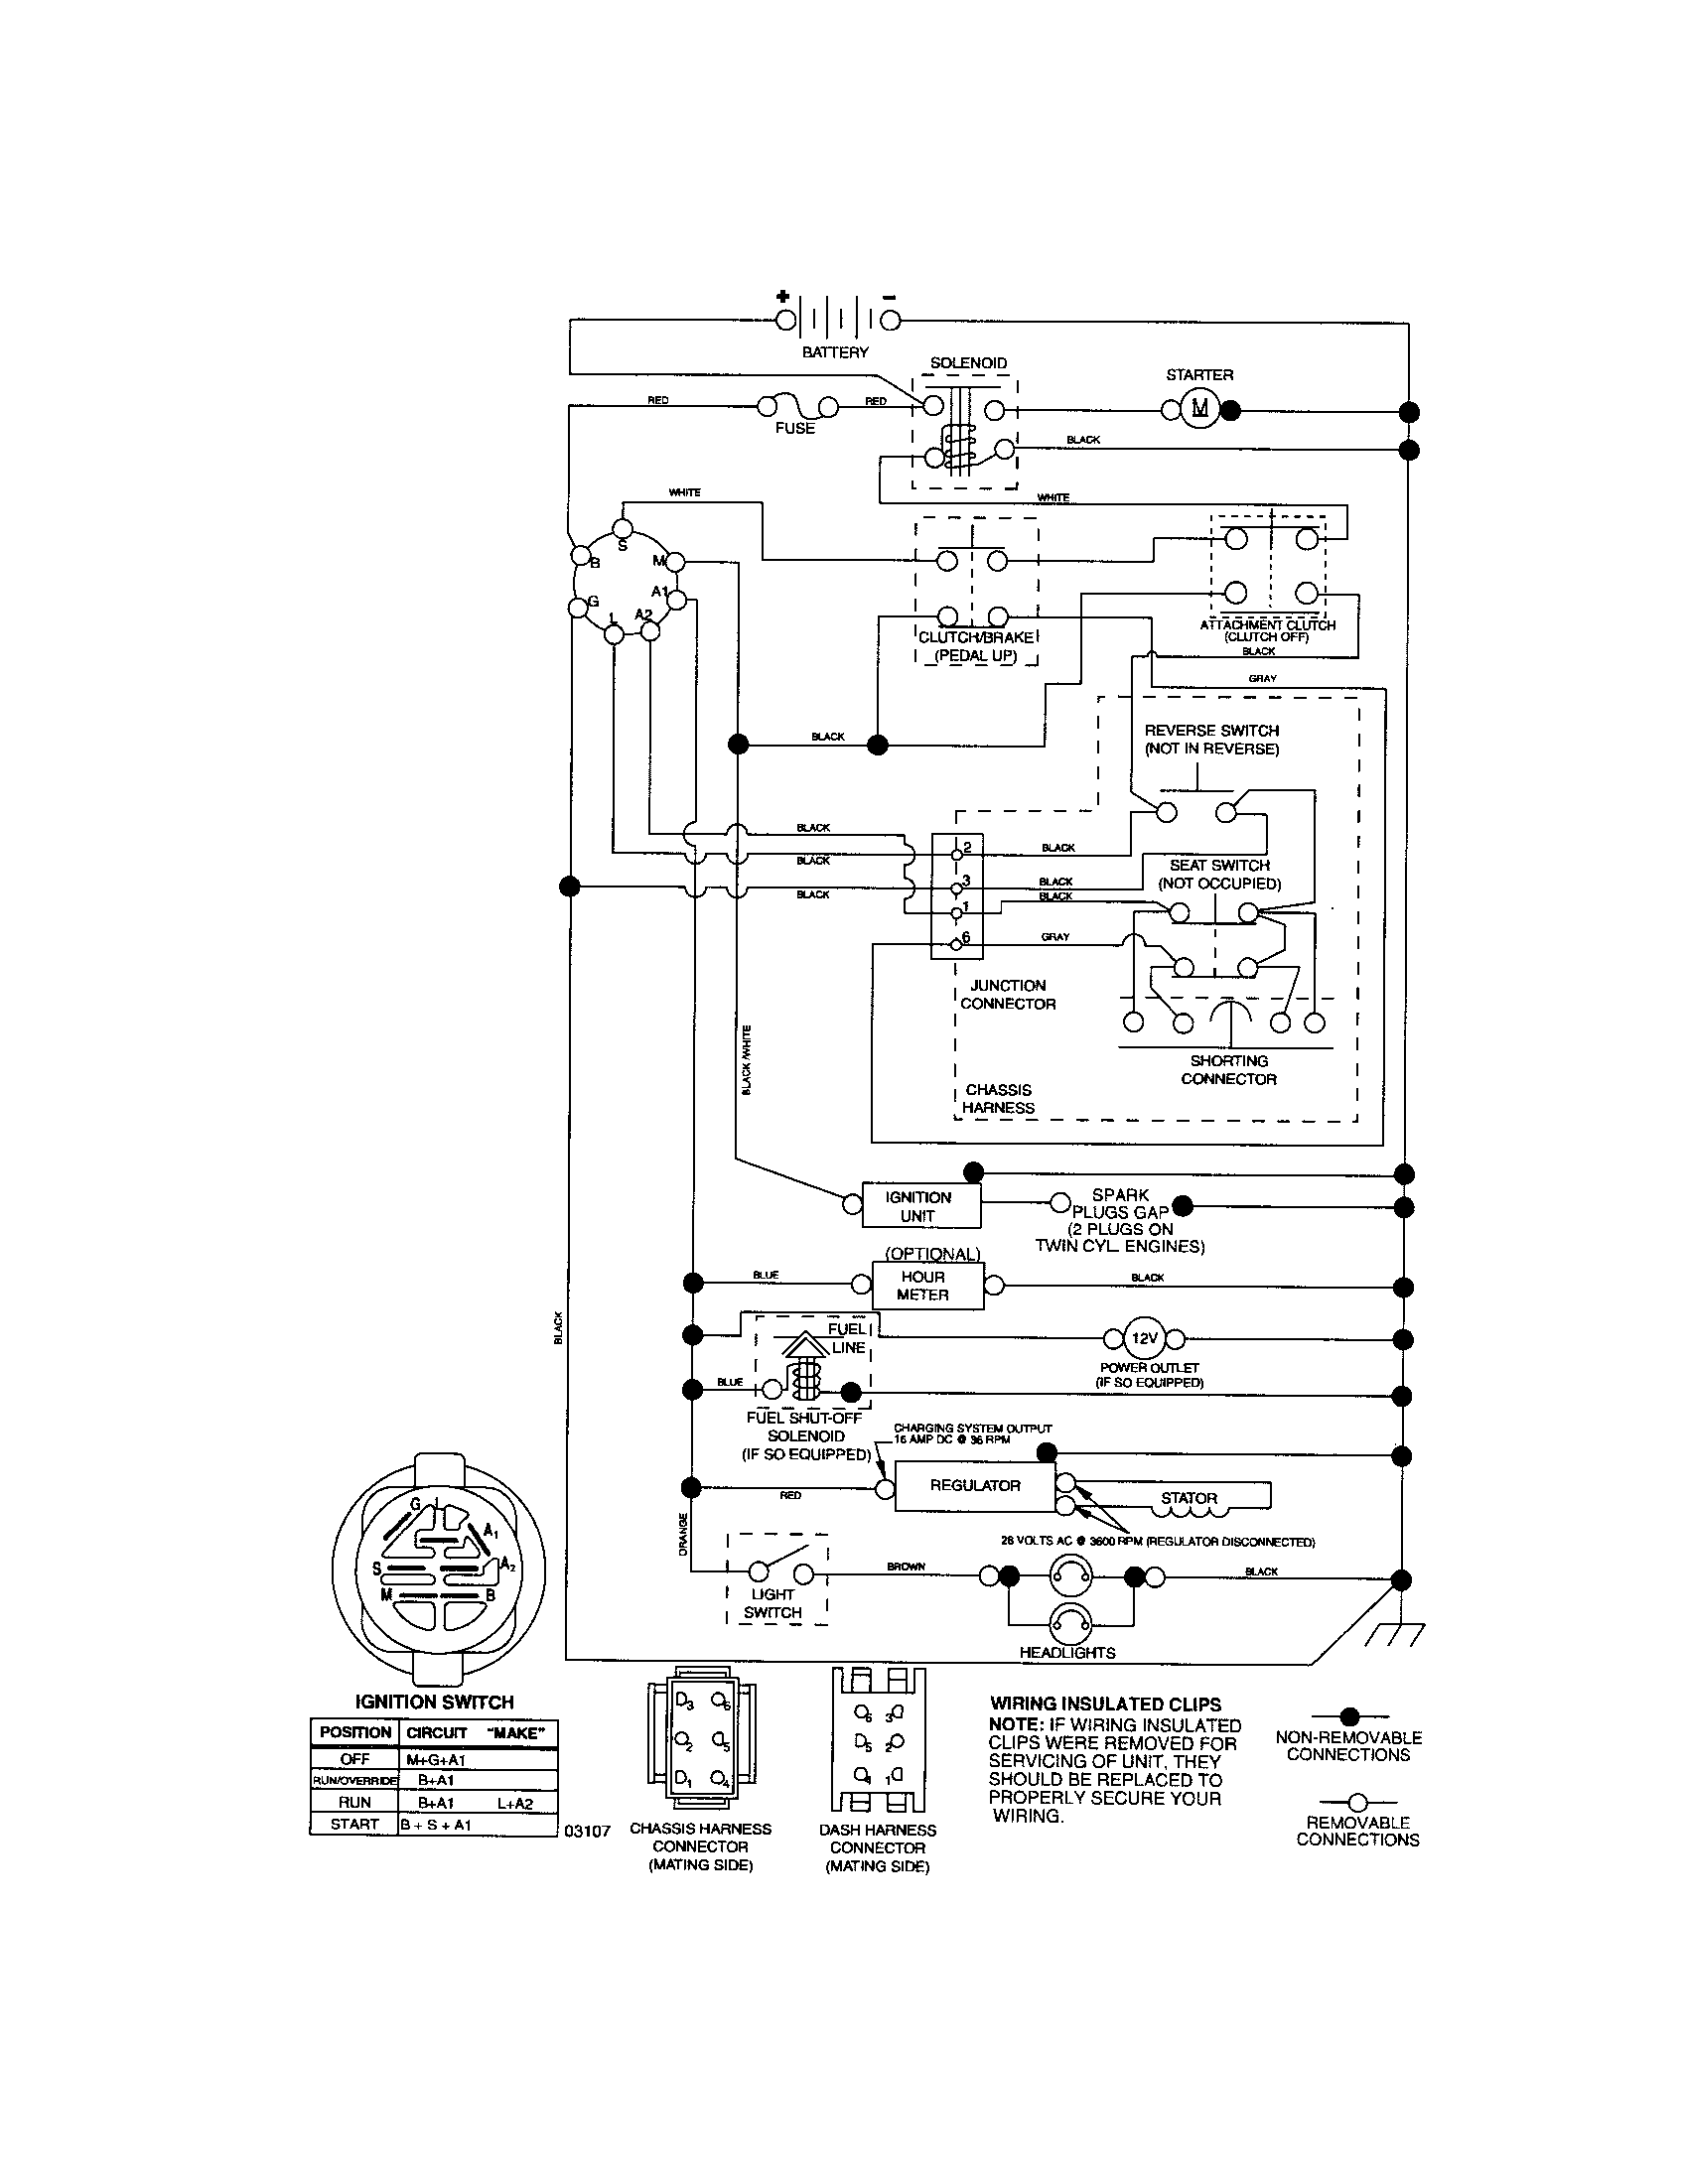 White Lawn Mower Wiring Diagram Starting Know About Maintainer Craftsman Riding Electrical Rh Pinterest Com